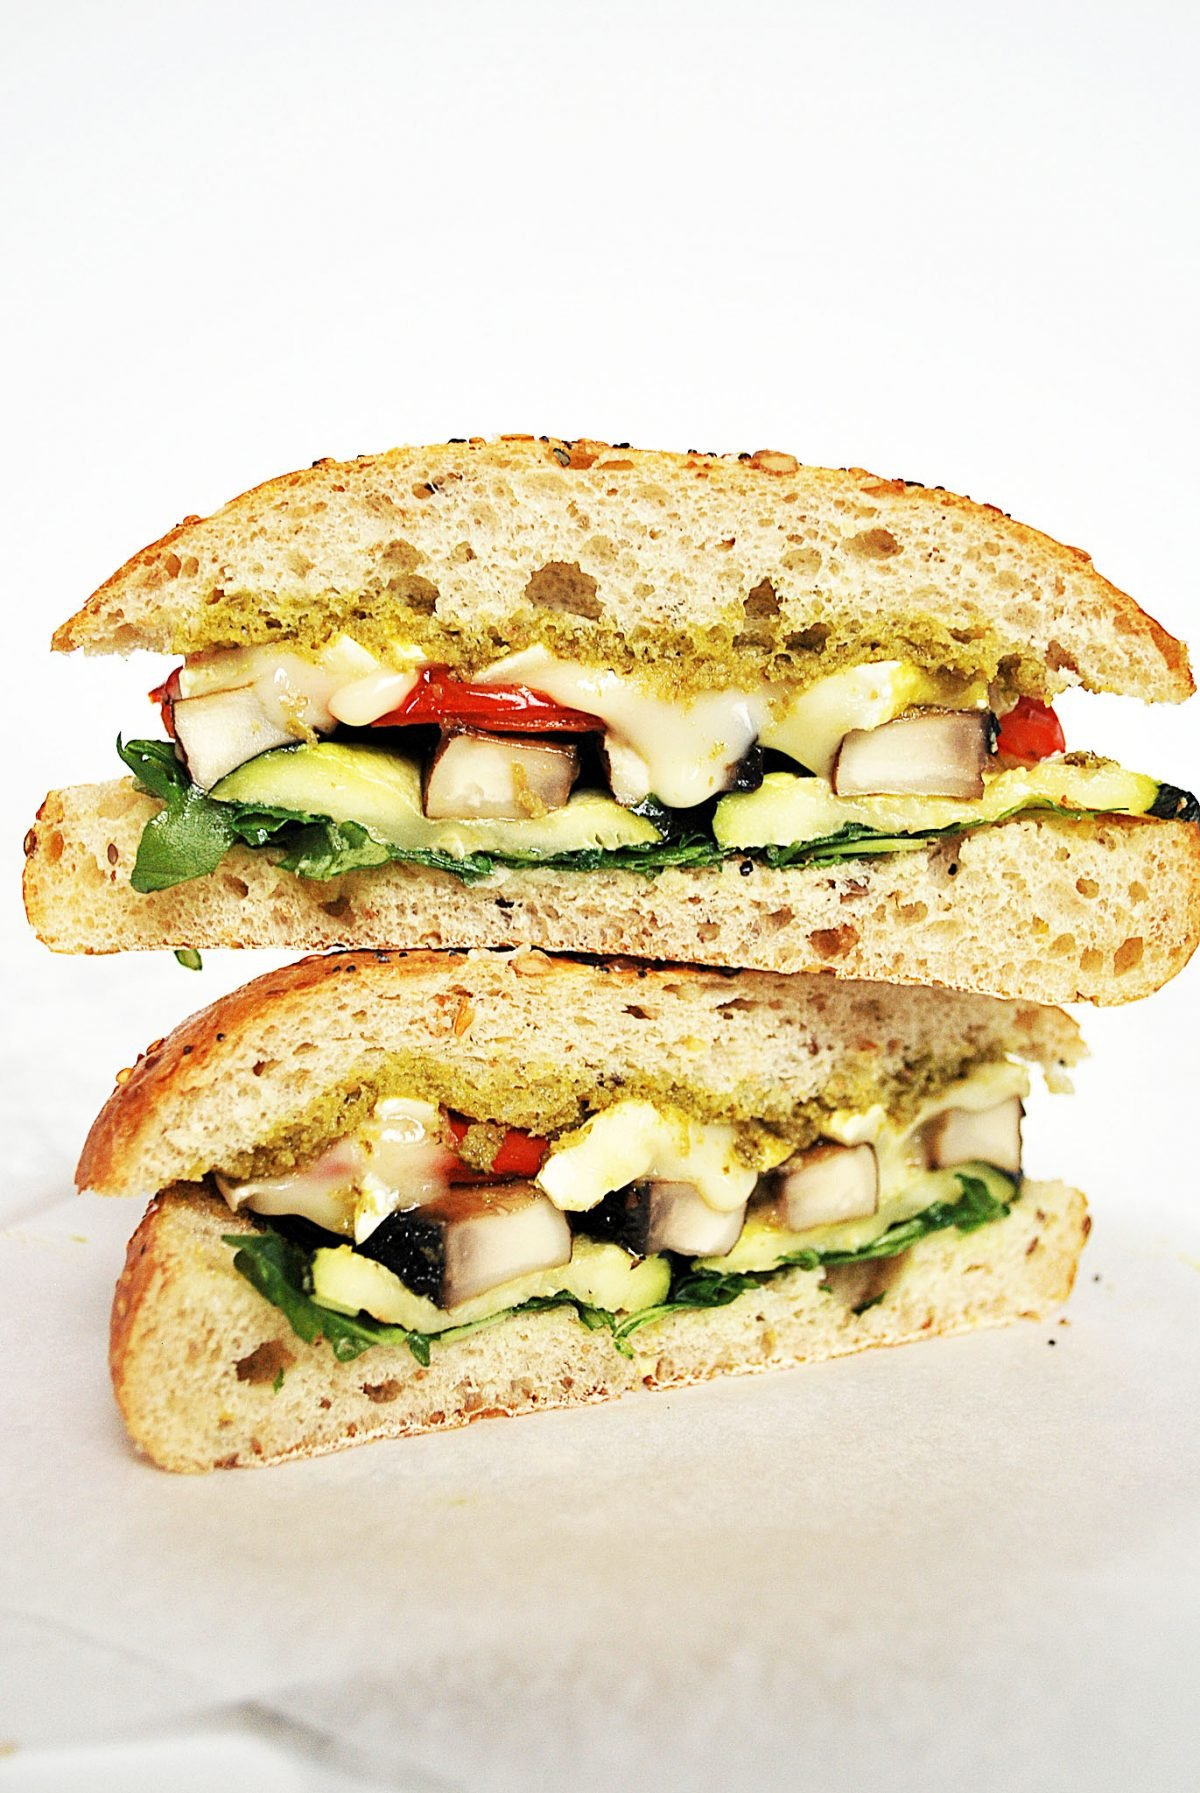 A front view of tacked halves of roasted vegetable sandwiches.